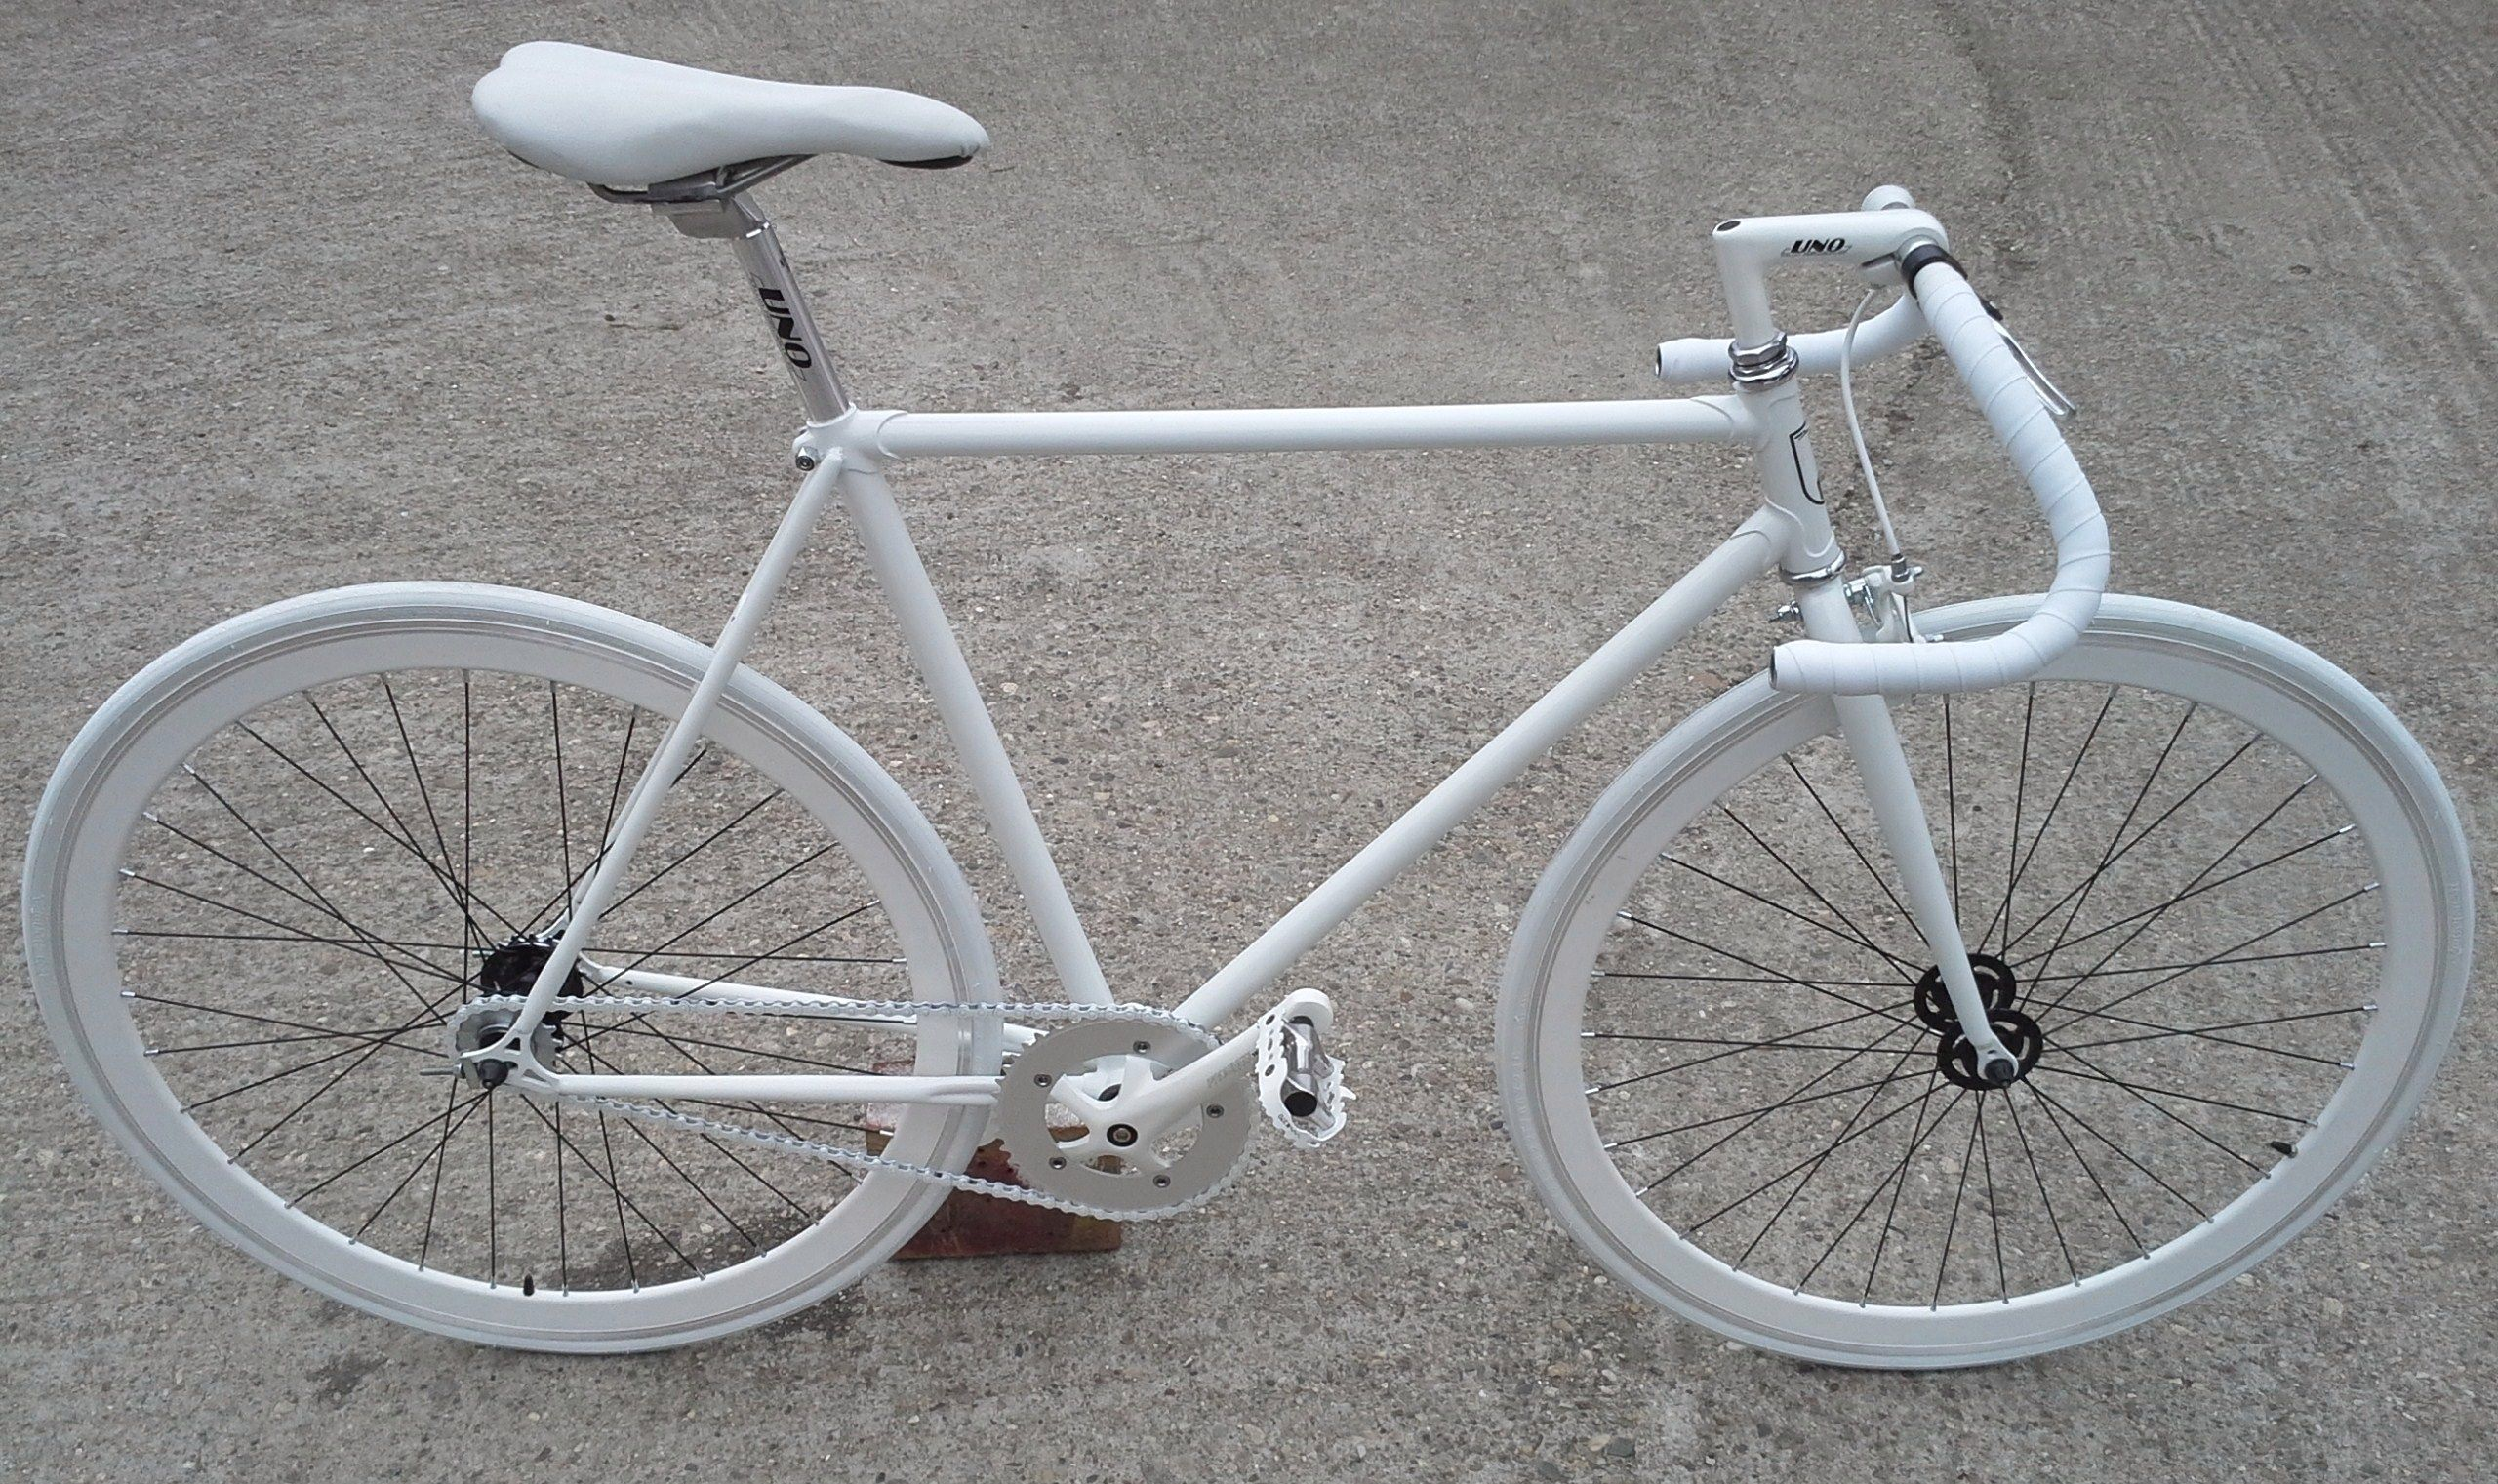 All White Fixie Pista Bicycles We Redesign